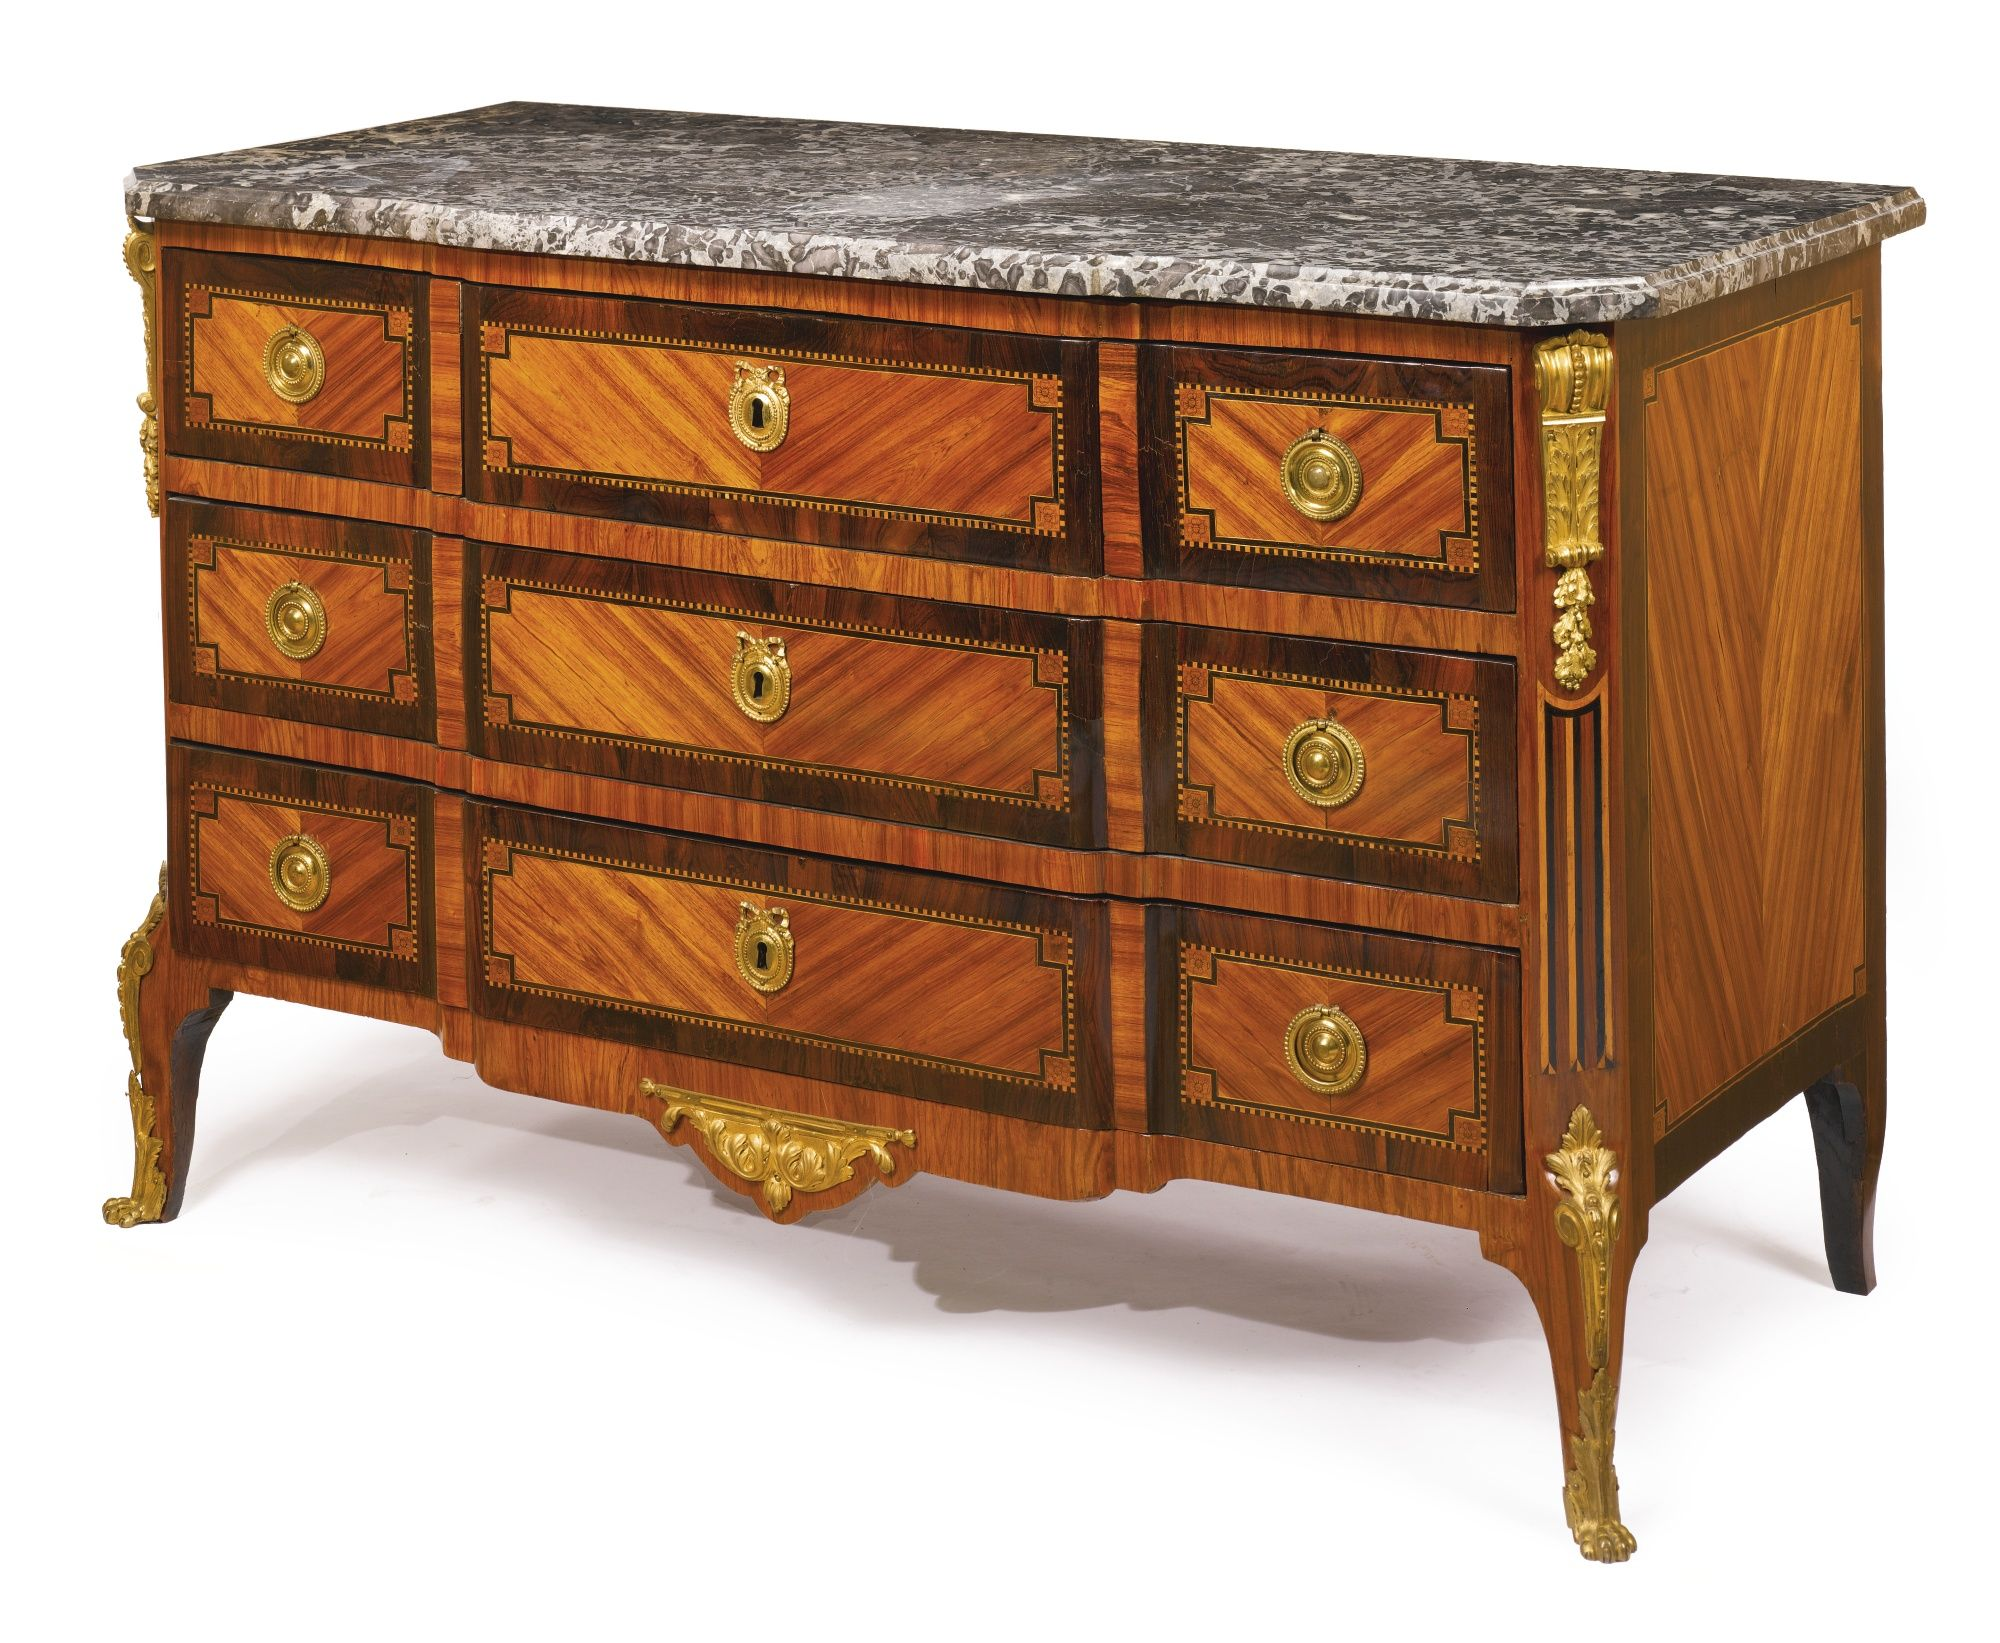 commodes/chest of drawers ||| sotheby's n09067lot6qk4zen